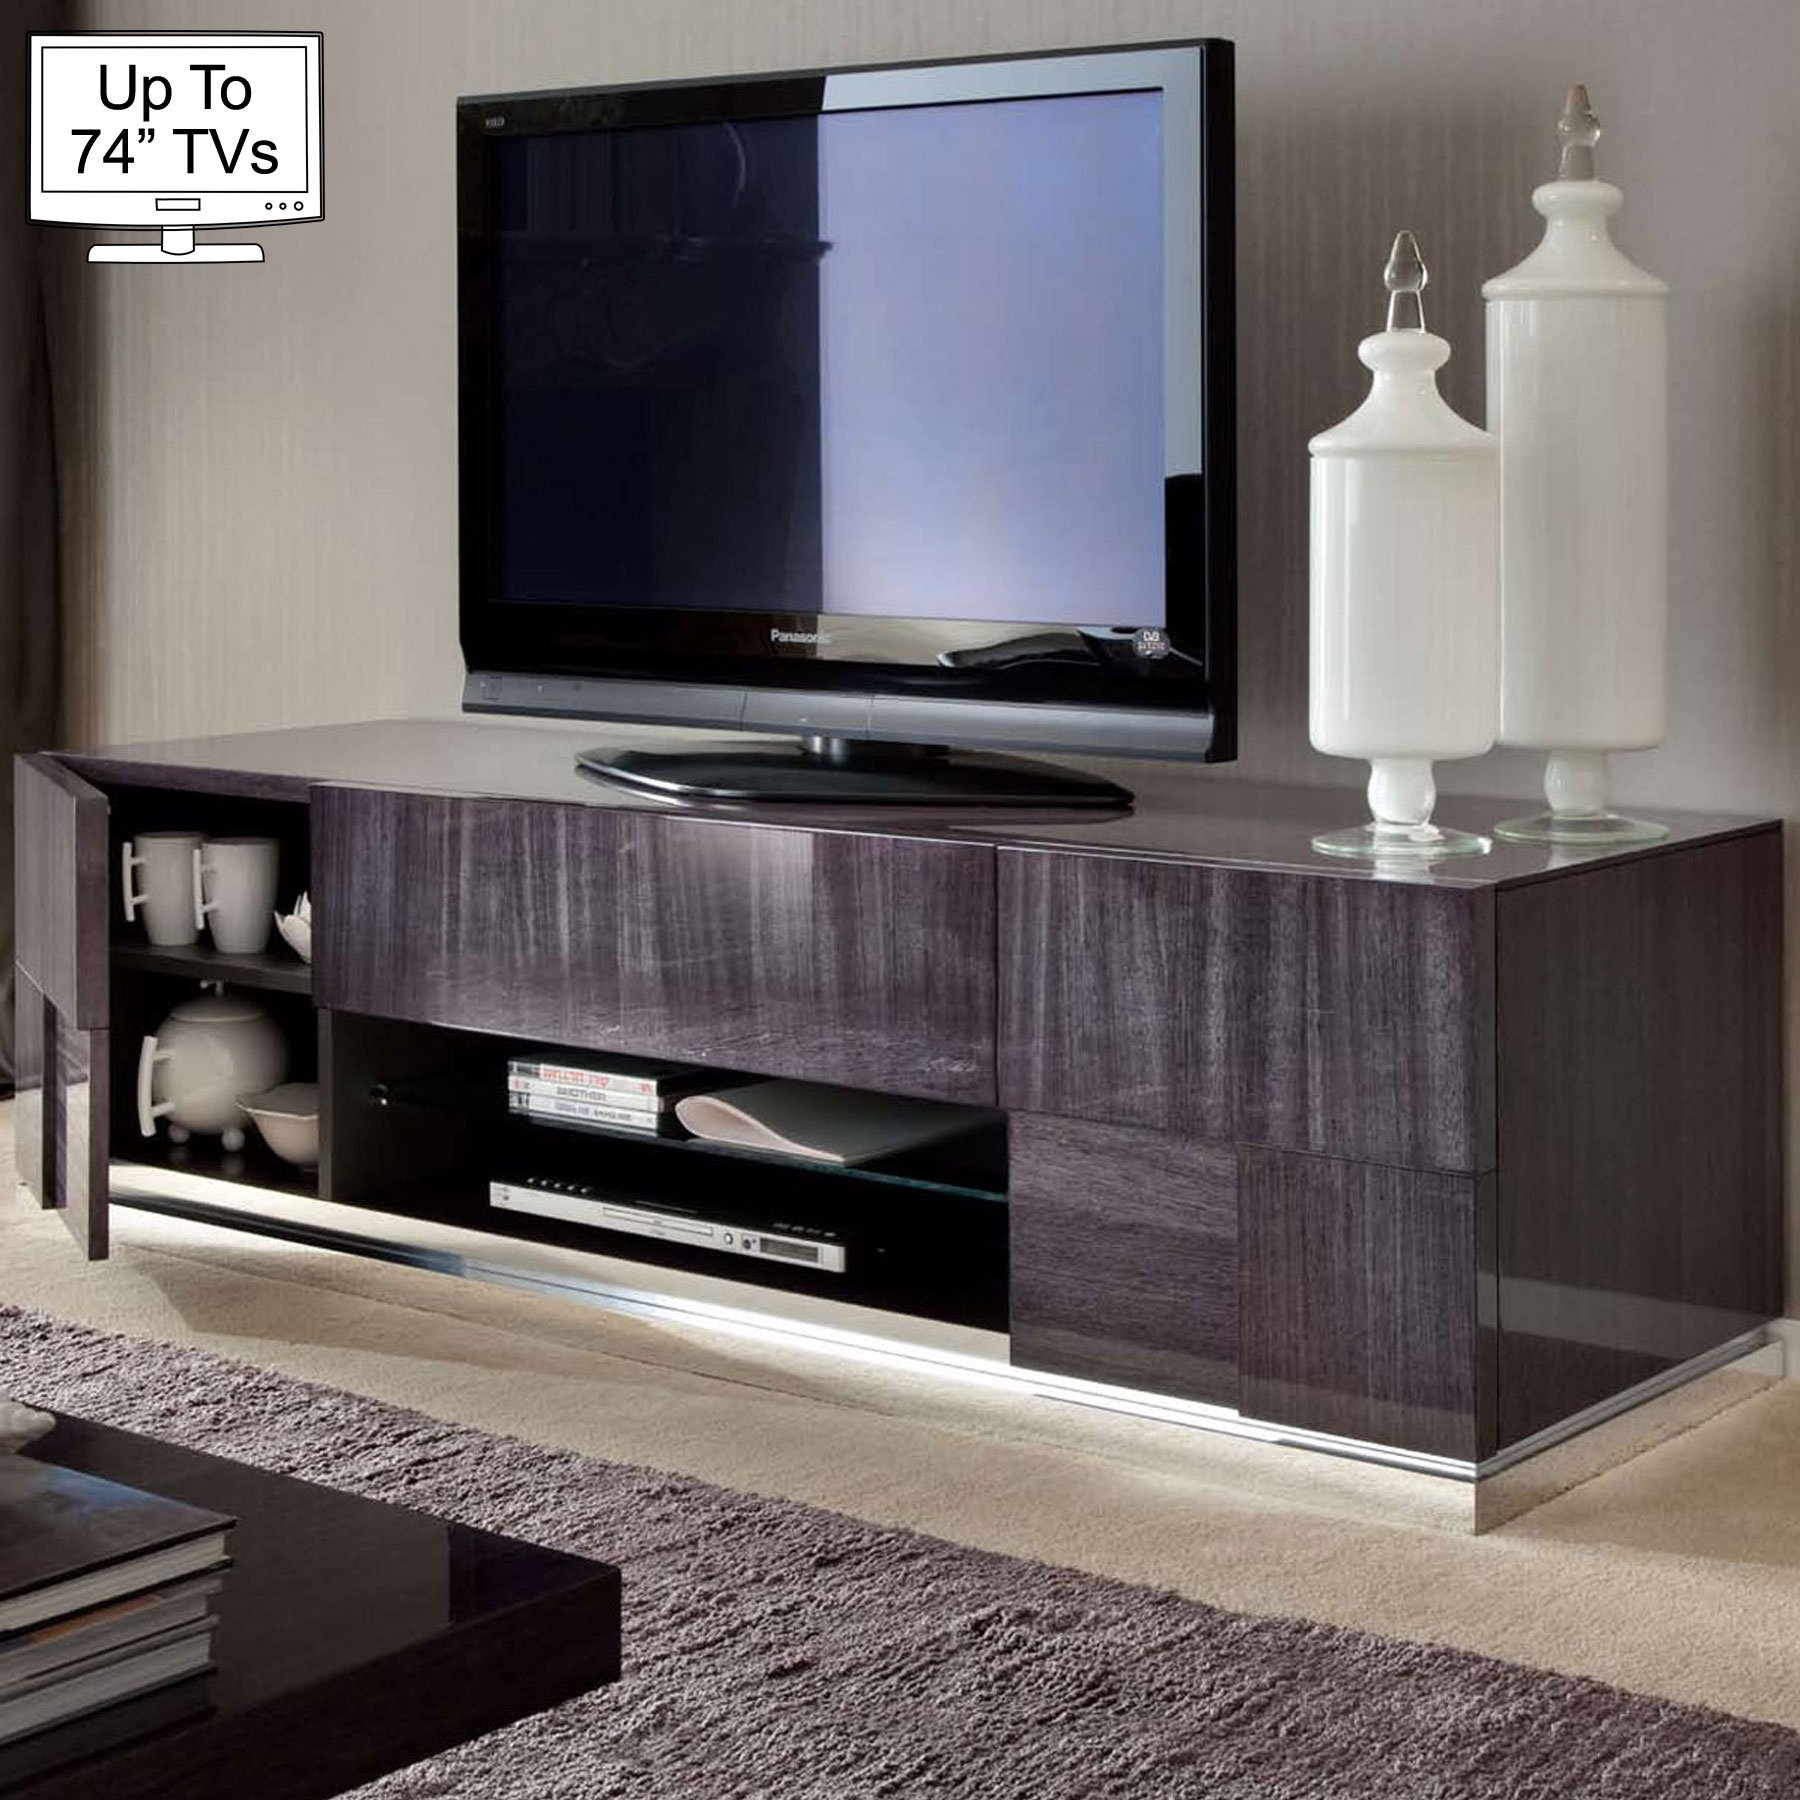 Monza High Gloss Tv Stand For Up To 74 Tvs